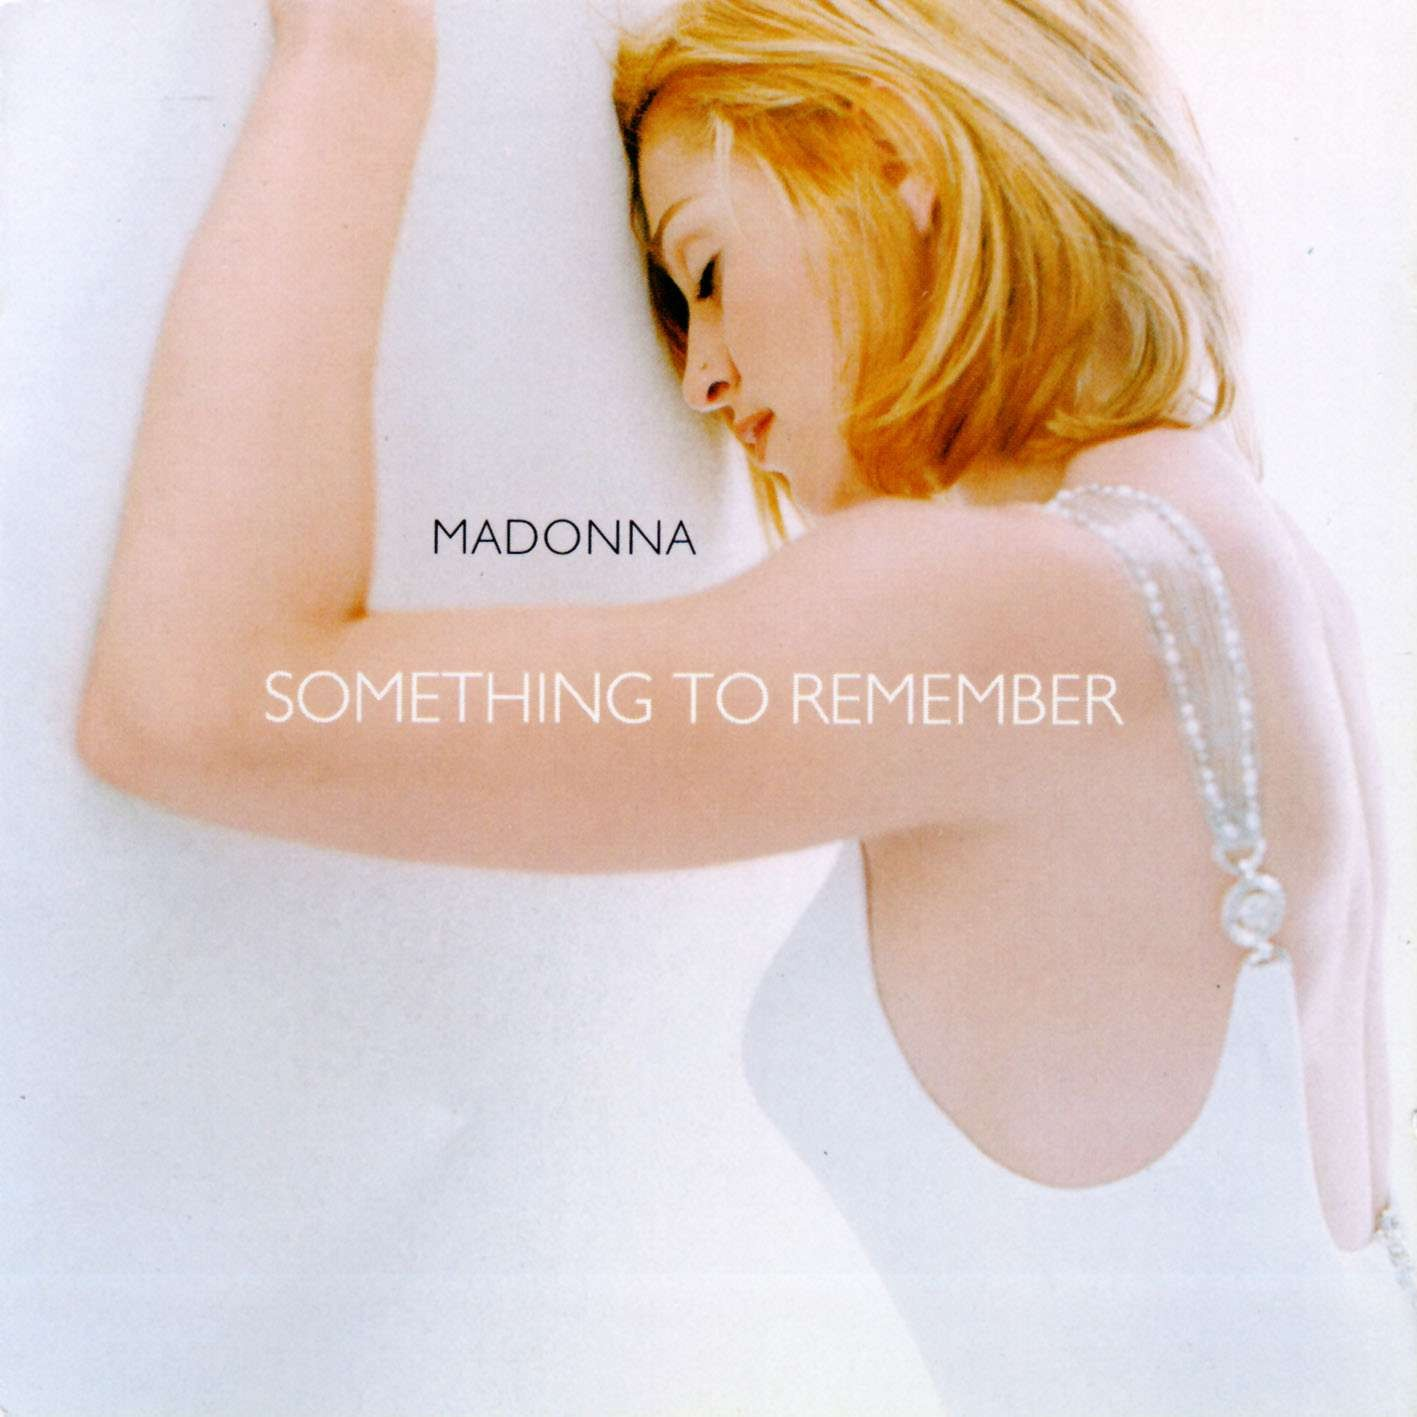 CD LACRADO MADONNA SOMETHING TO REMEMBER 1995